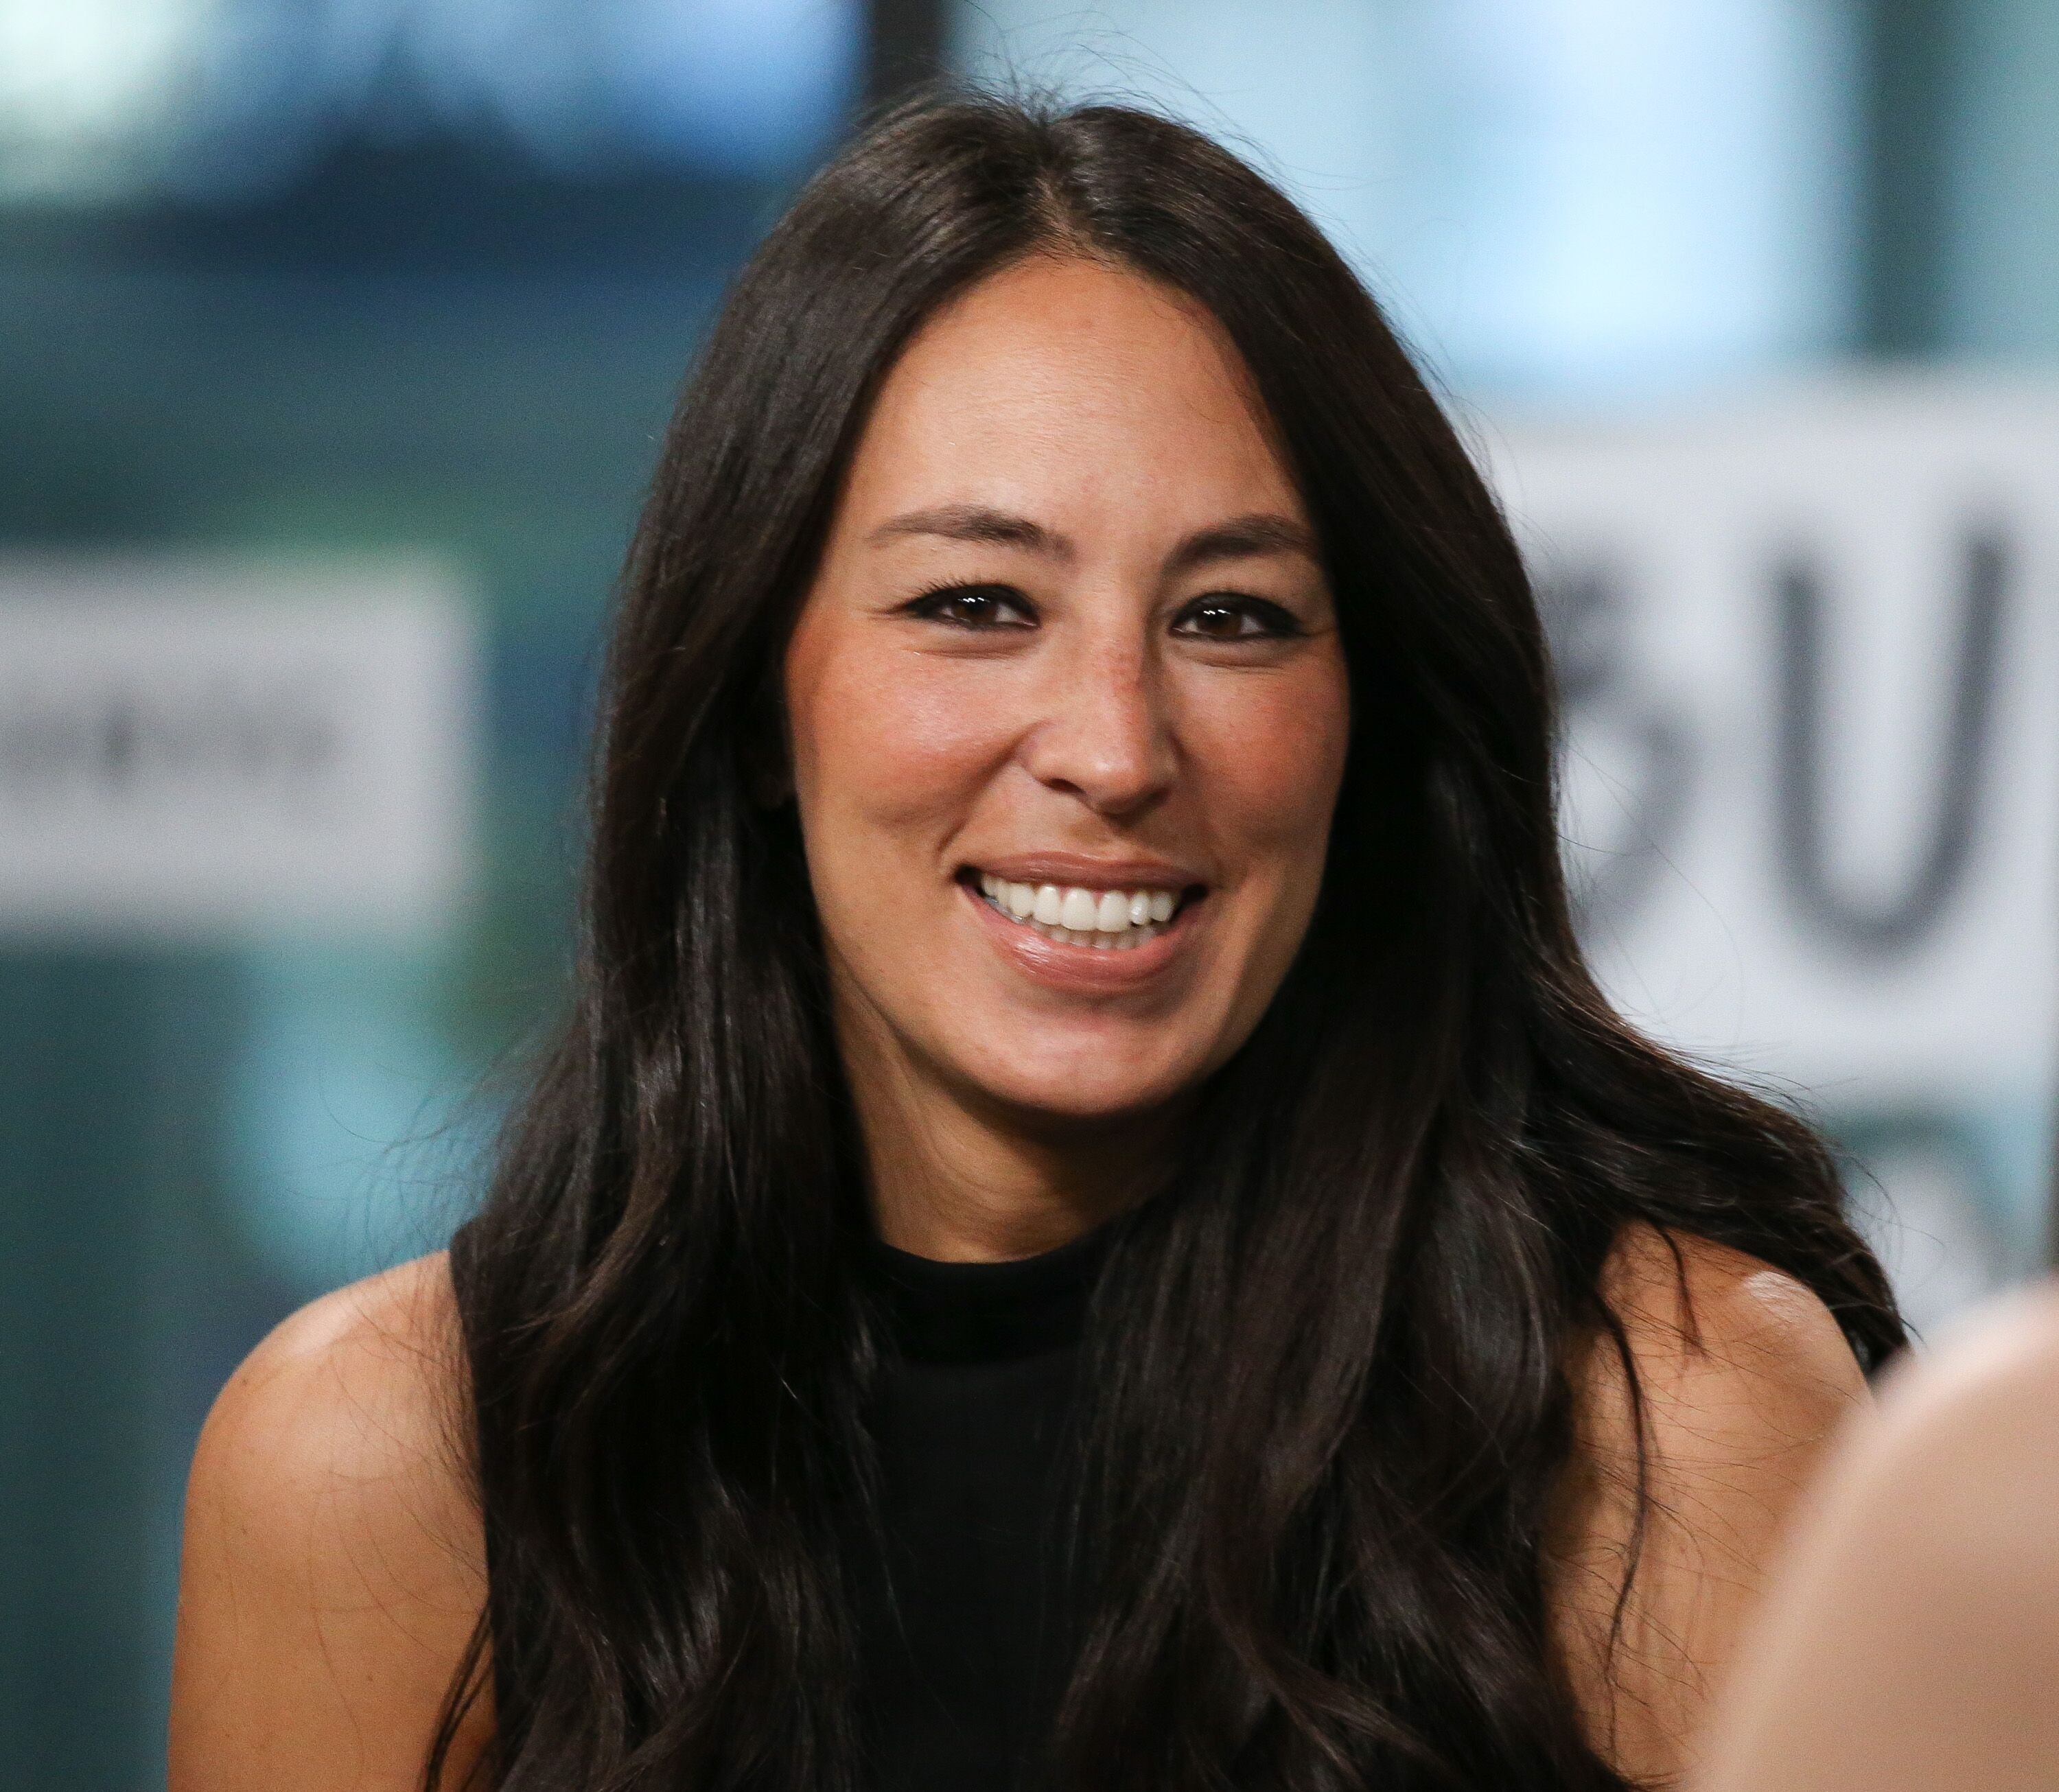 """Joanna Gaines discusses new book, """"Capital Gaines: Smart Things I Learned Doing Stupid Stuff"""" at Build Studio on October 18, 2017 in New York City 